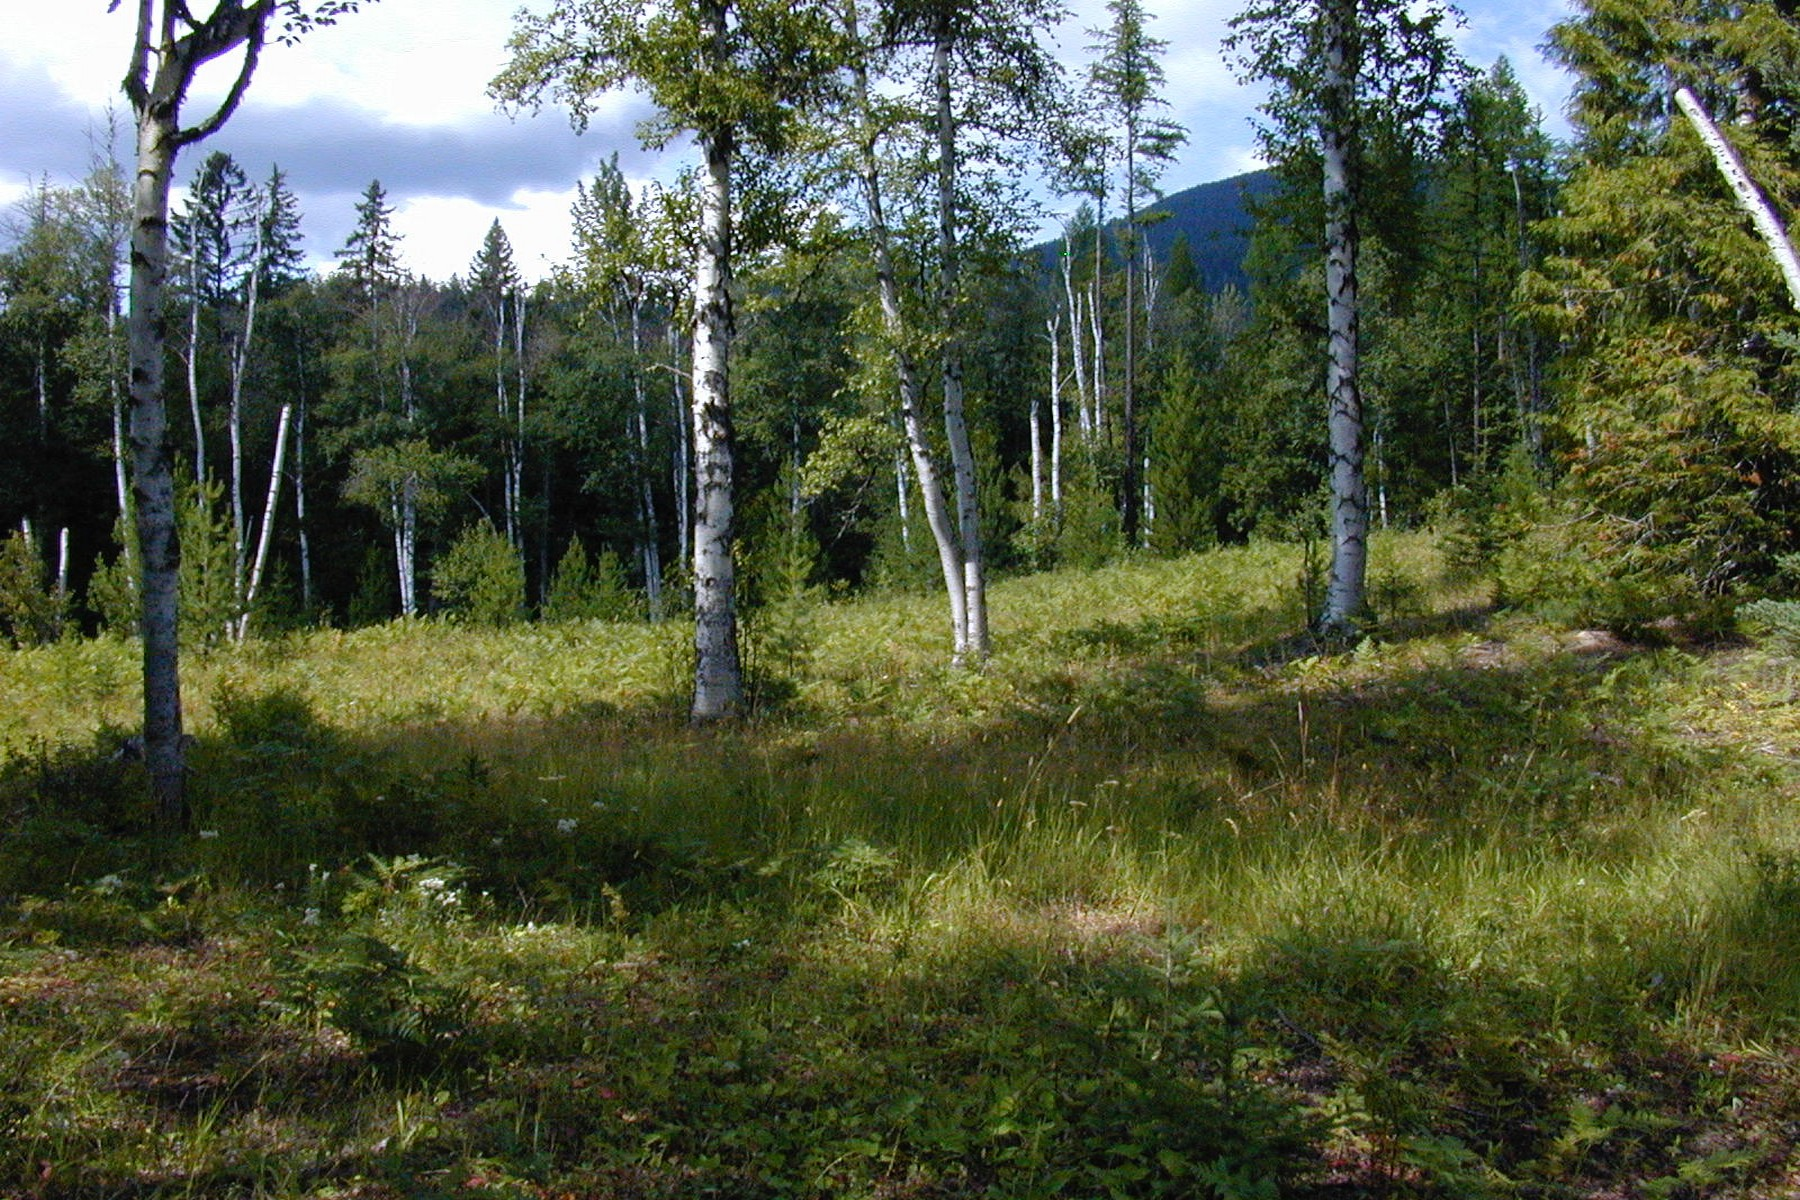 Additional photo for property listing at 575 Haskill Creek Road, Whitefish, MT 59937 575  Haskill Creek Rd Whitefish, Montana 59937 United States